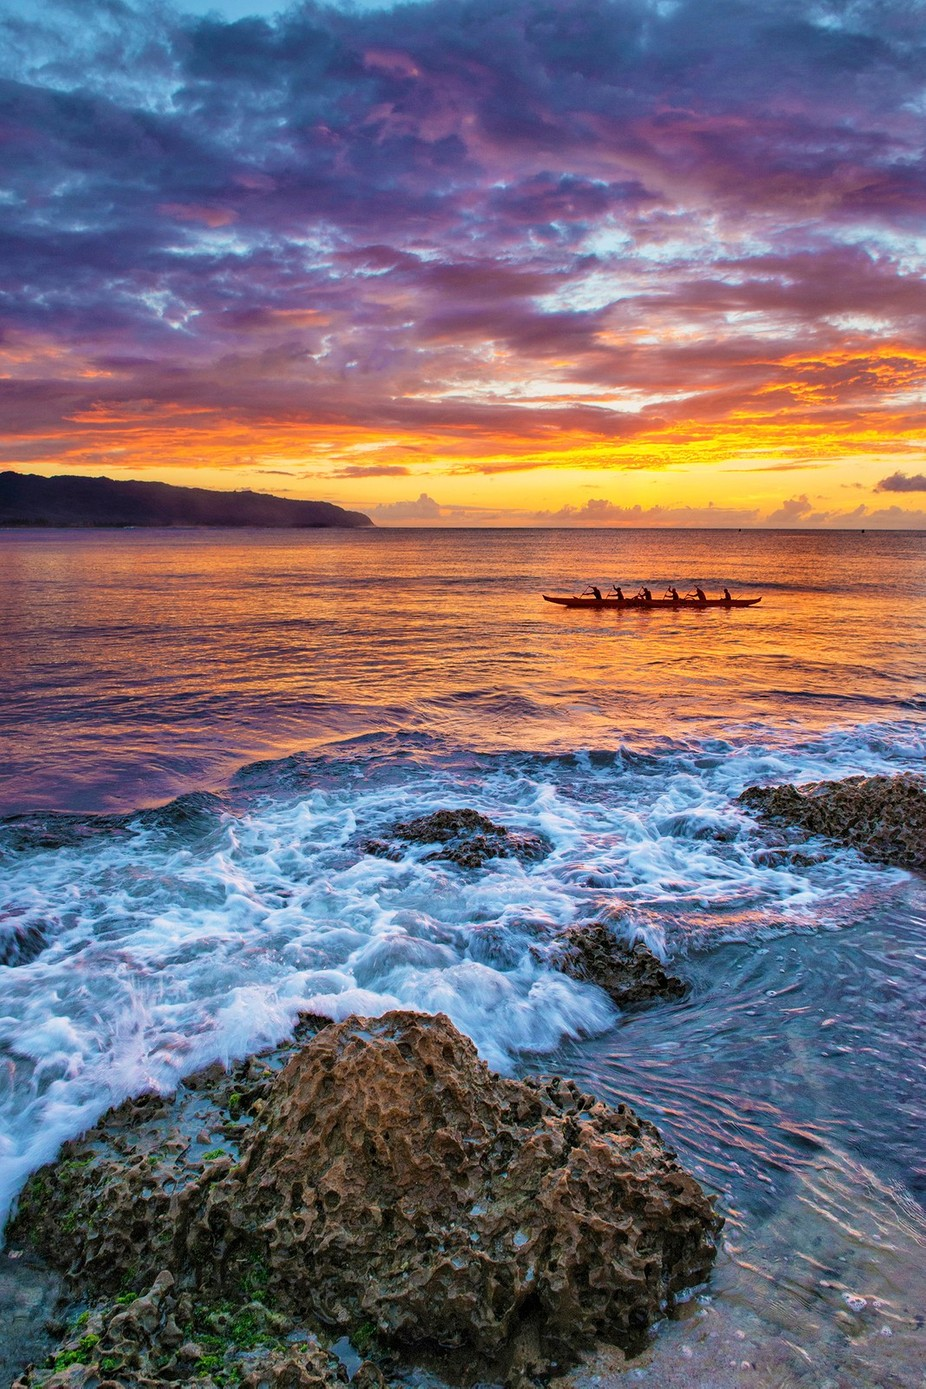 Outrigger by fidfoto - People In Large Areas Photo Contest